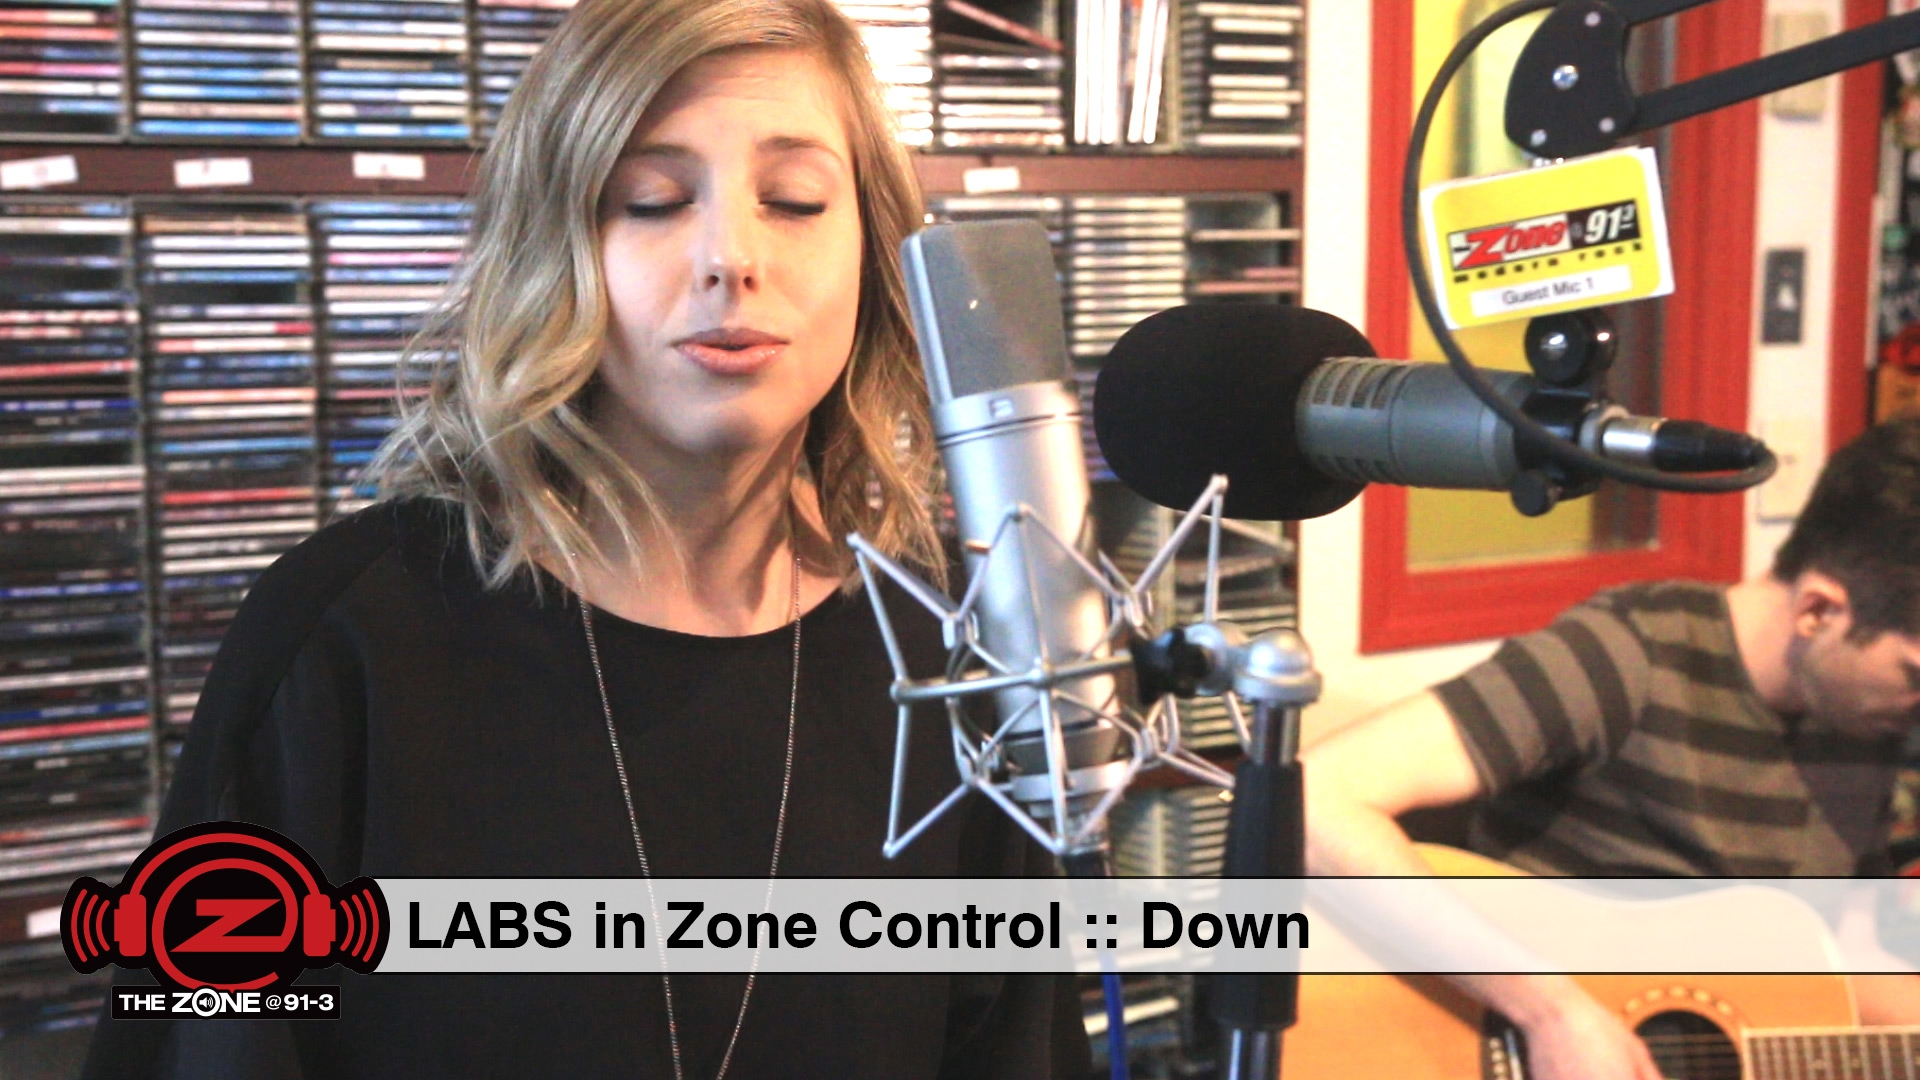 LABS in Zone Control :: Down